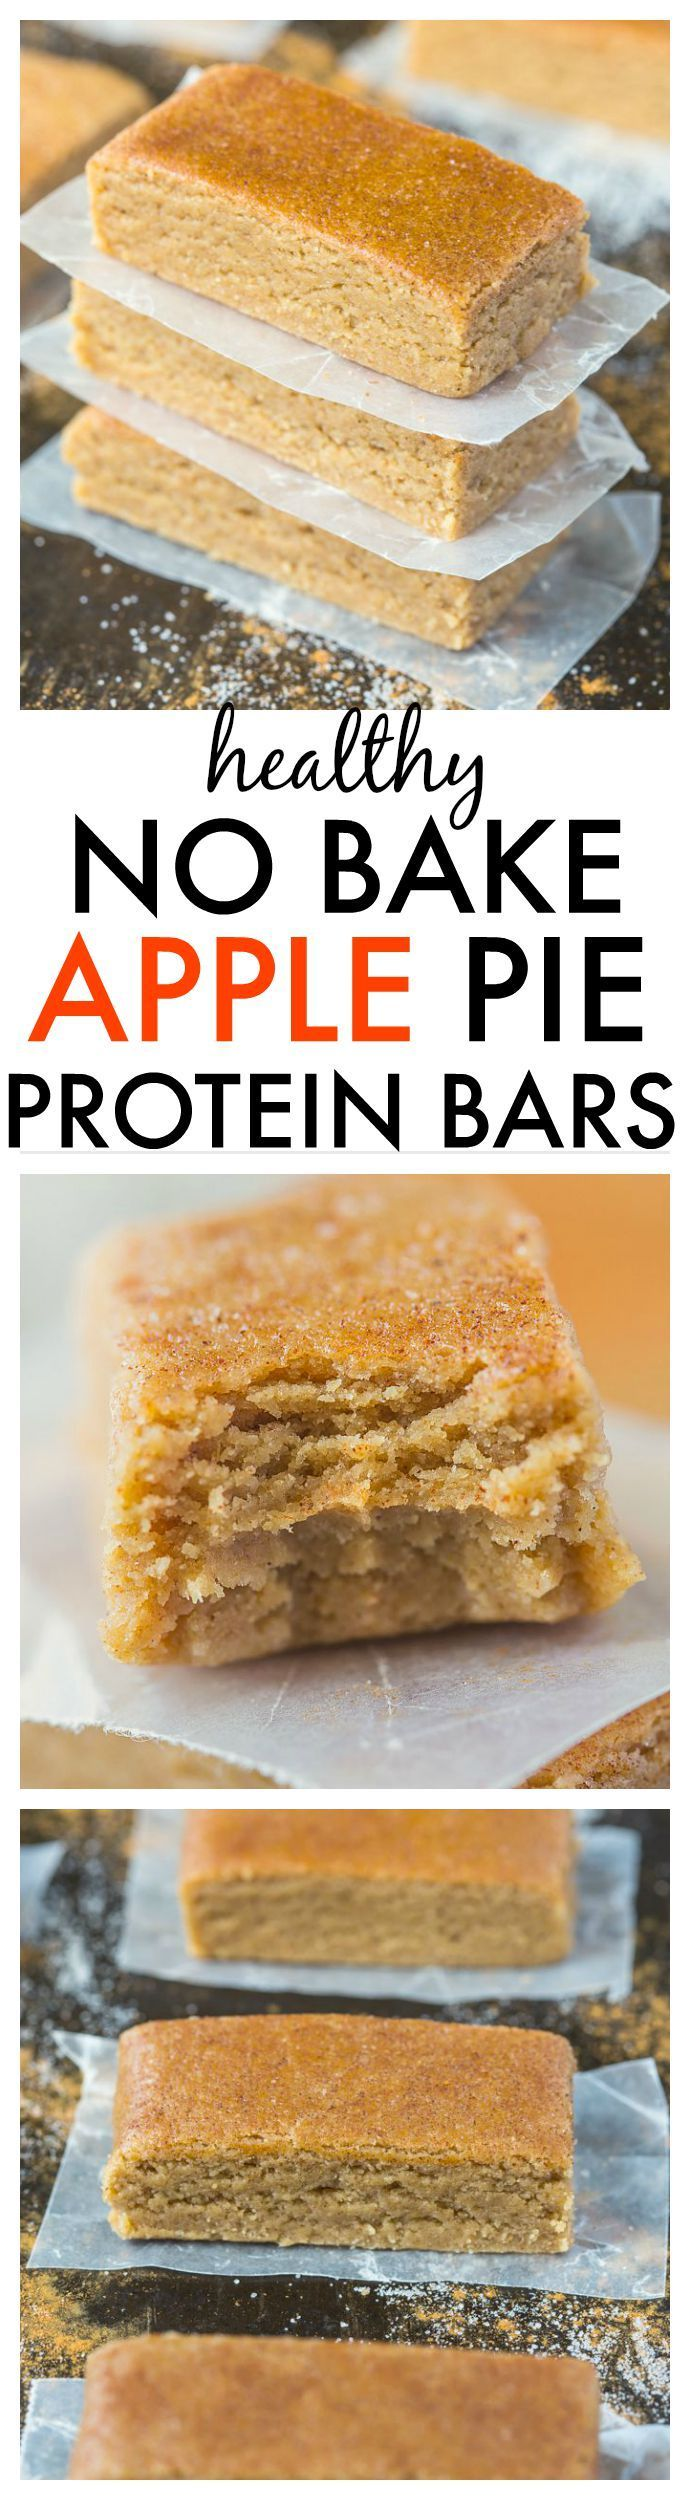 Healthy No Bake Apple Pie Protein Bars-Just 10 minutes and 1 bowl to whip these up- Soft, chewy and no refrigeration needed- They taste like dessert! {vegan, gluten free, refined sugar free + paleo option!} - thebigmansworld.com